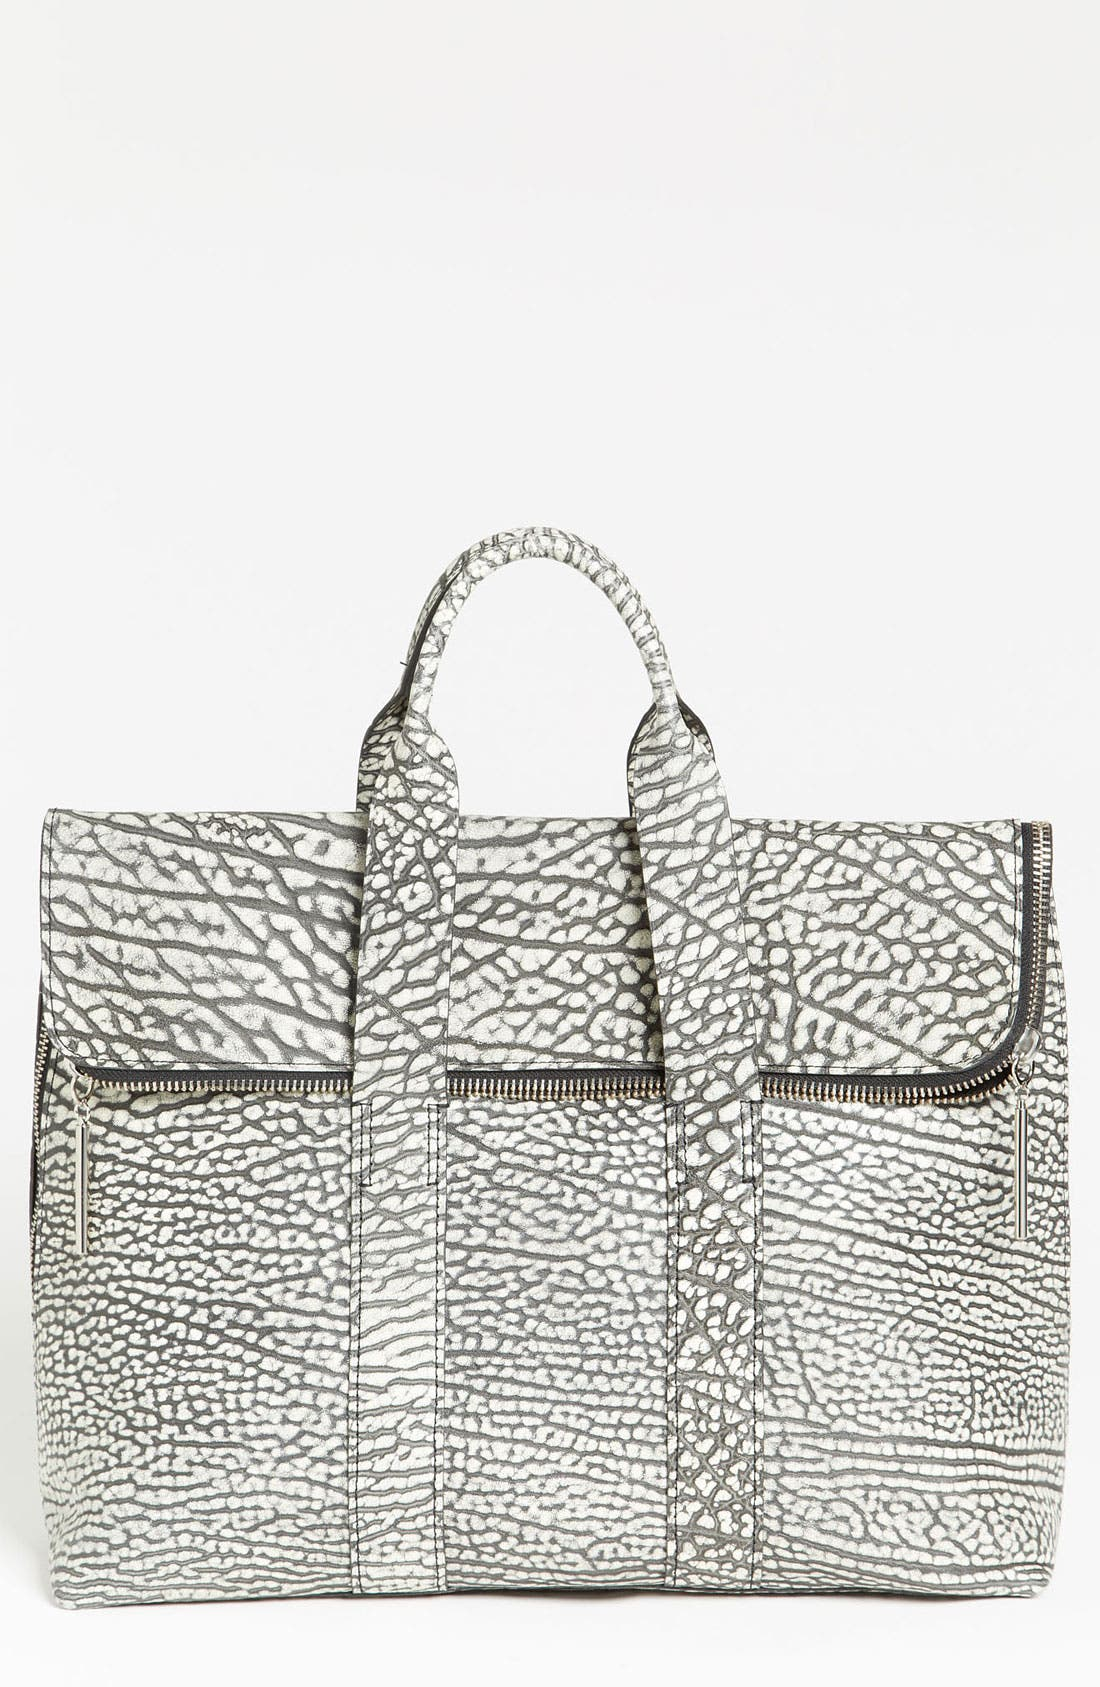 Main Image - 3.1 Phillip Lim '31 Hour' Tote